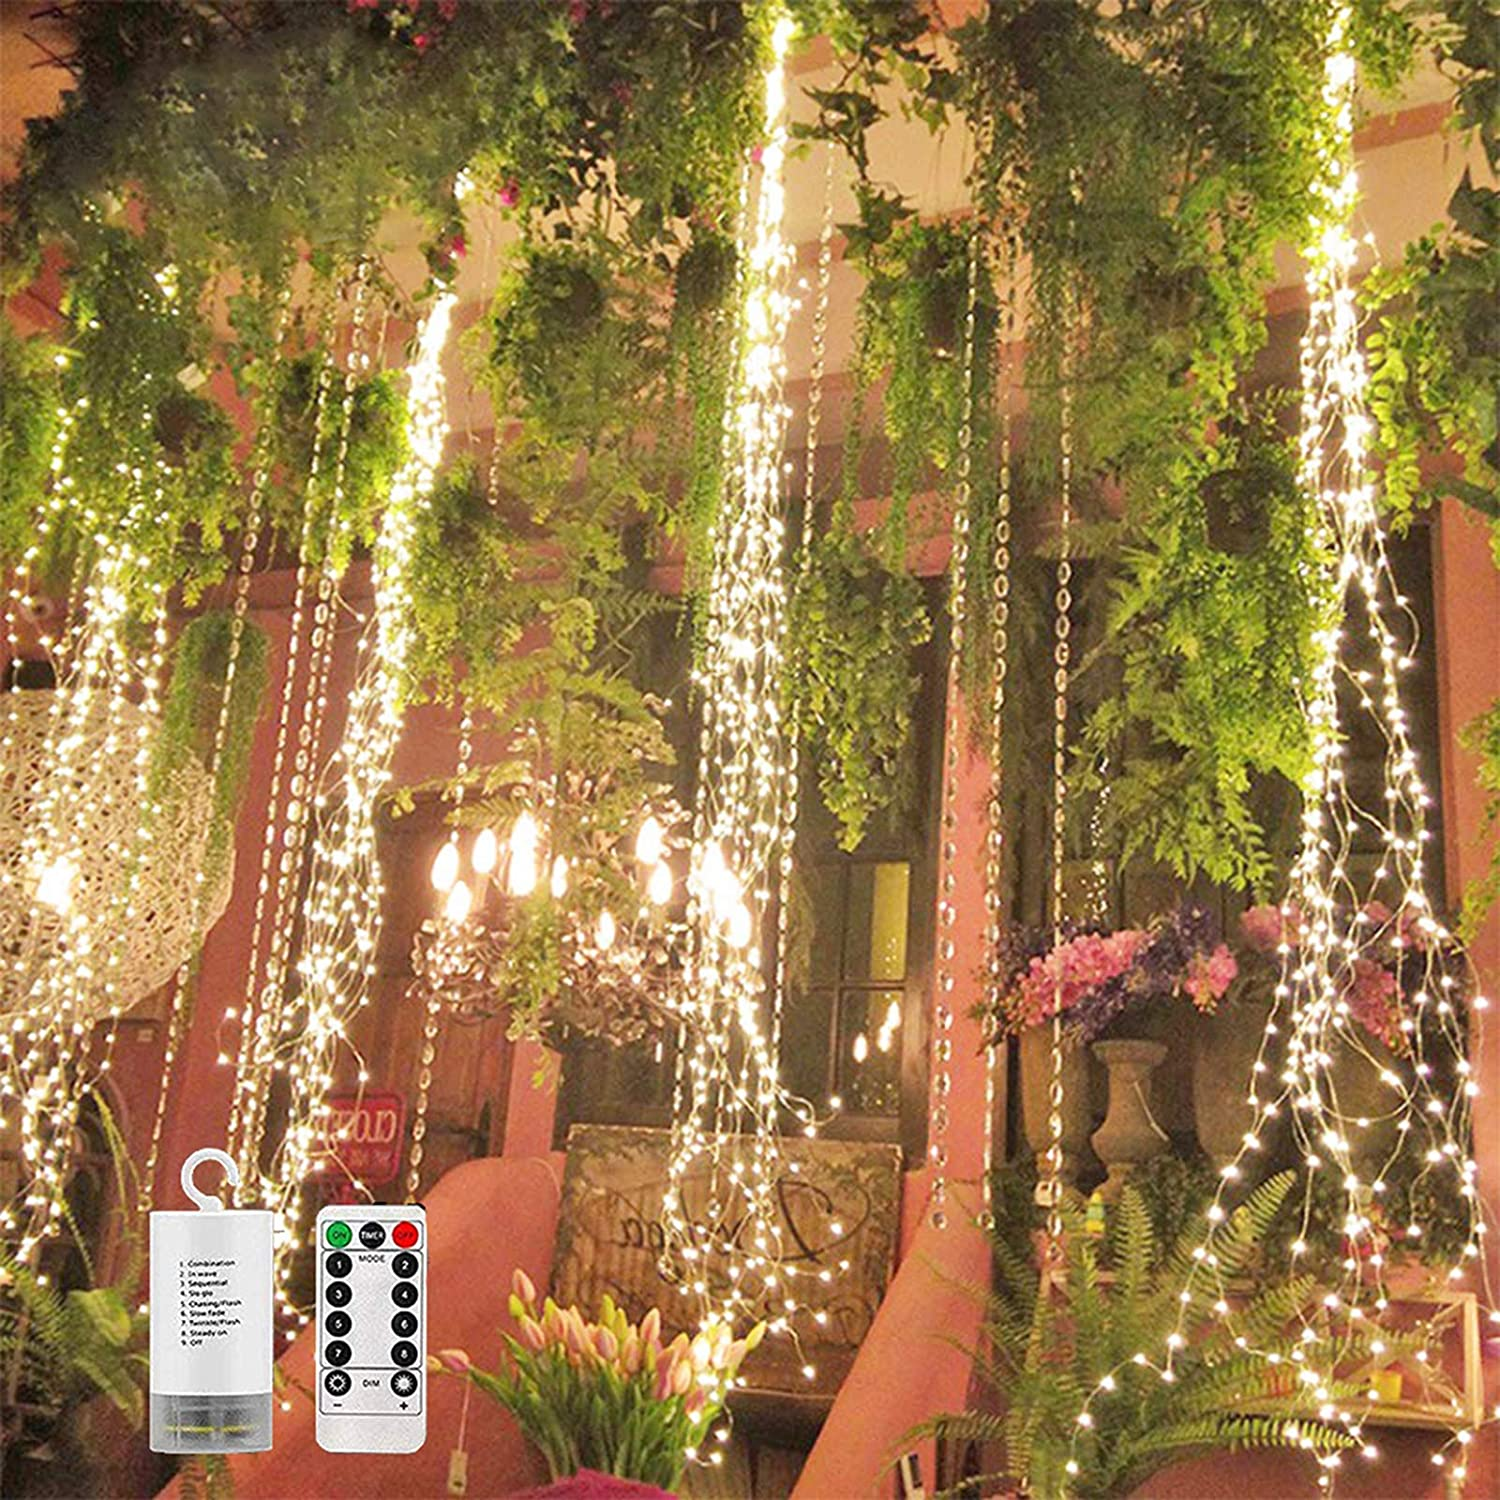 220 LED Firefly Bunch Lights Battery Operated, 8 Flashing Modes Waterproof Copper Wire Waterfall Lights, Remote Controlled Timer and Hooks, Fairy Lights for Indoor Outdoor Decor (Warm White)